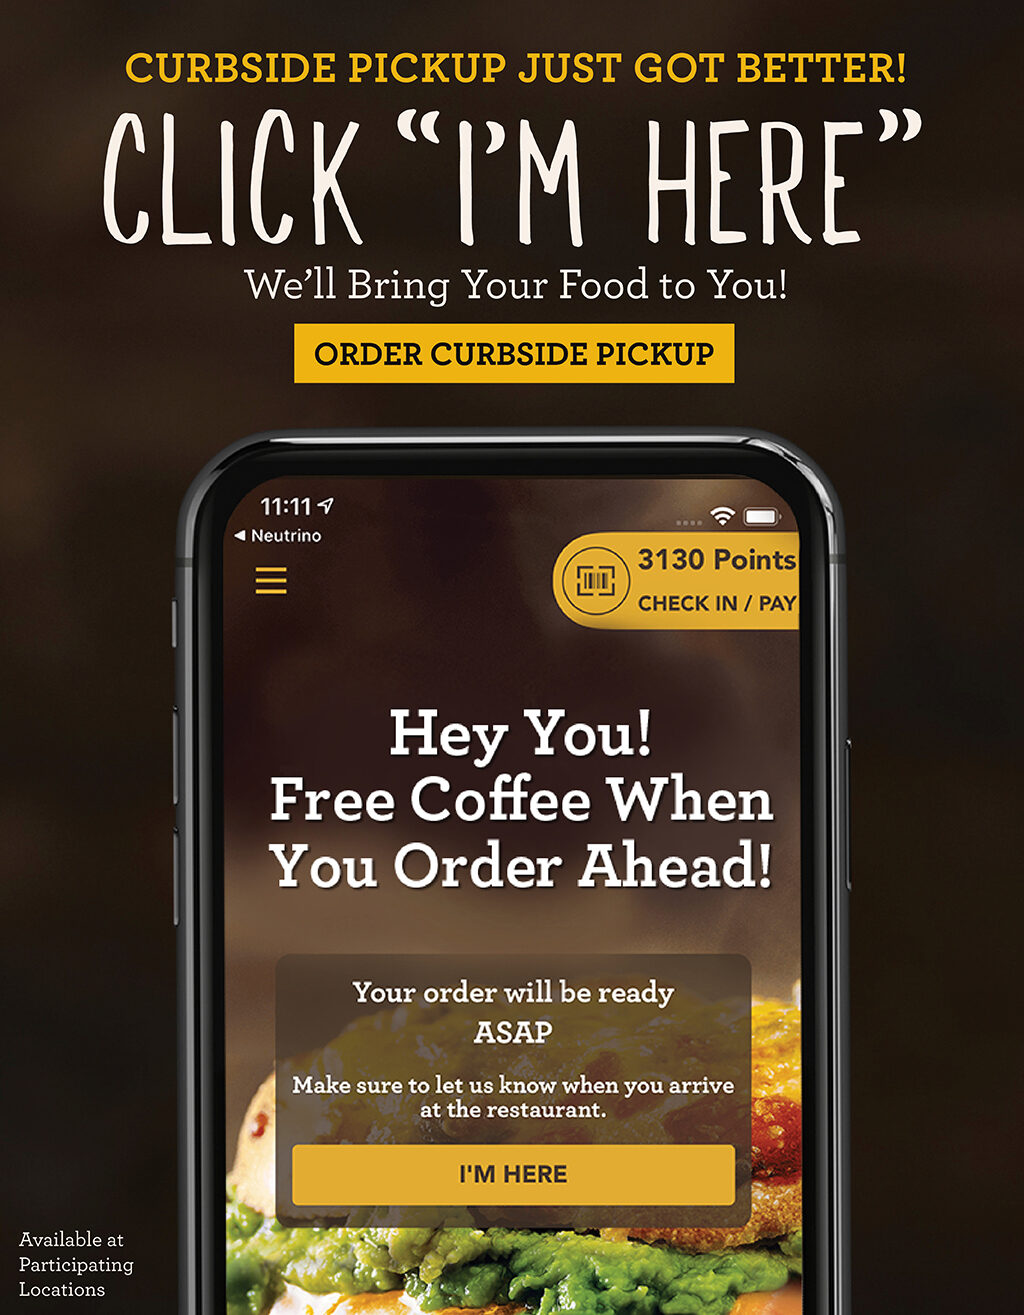 Curbside pickup just got better! Click the I'm Here button and we're bring your food to you when you order ahead.